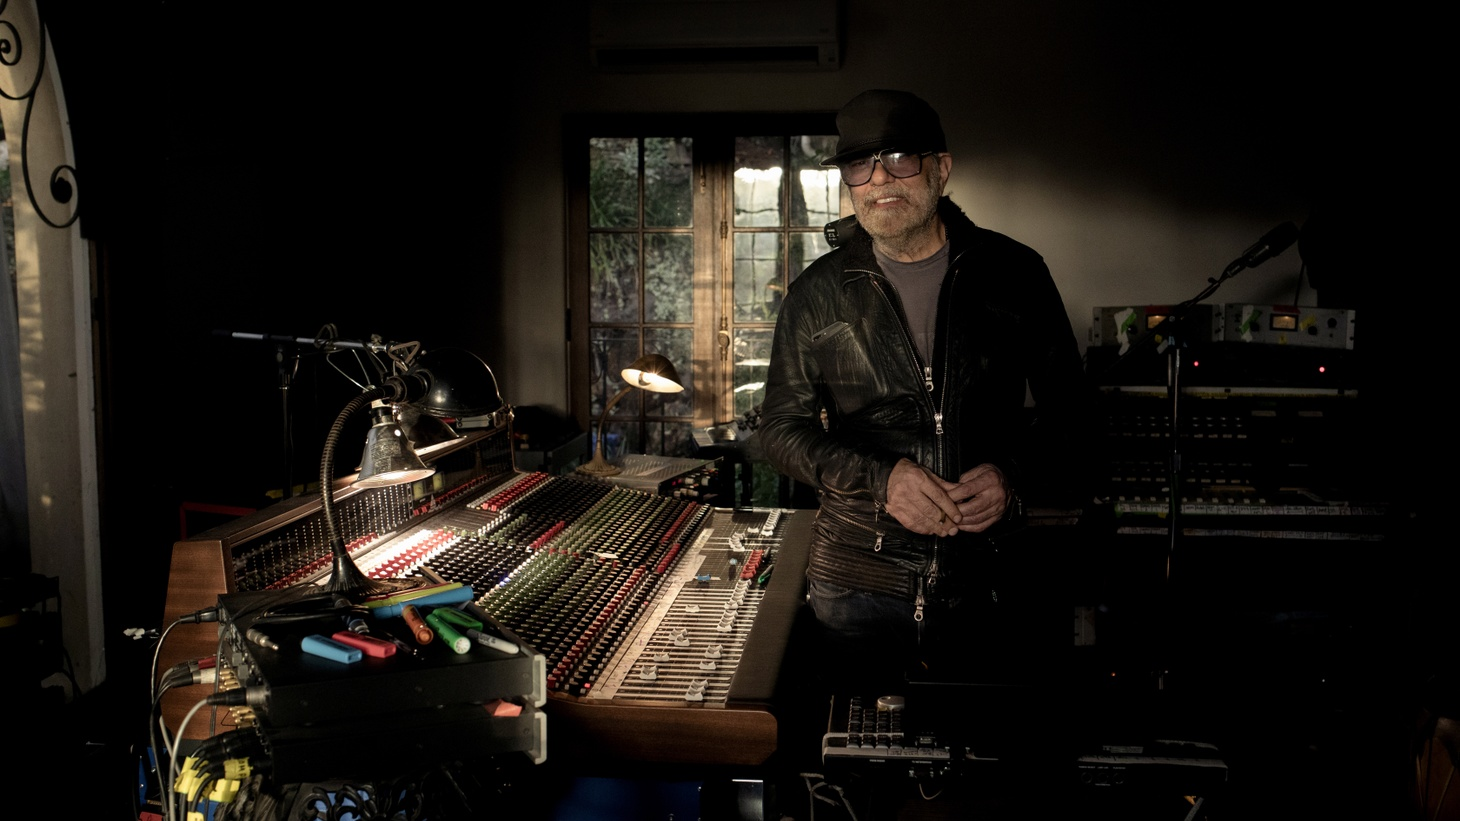 We know him for his work with the greats including U2, Brian Eno, Bob Dylan, Willie Nelson and Peter Gabriel to name a very few but it's rare that 11-time Grammy Award winning producer Daniel Lanois shares his own work.